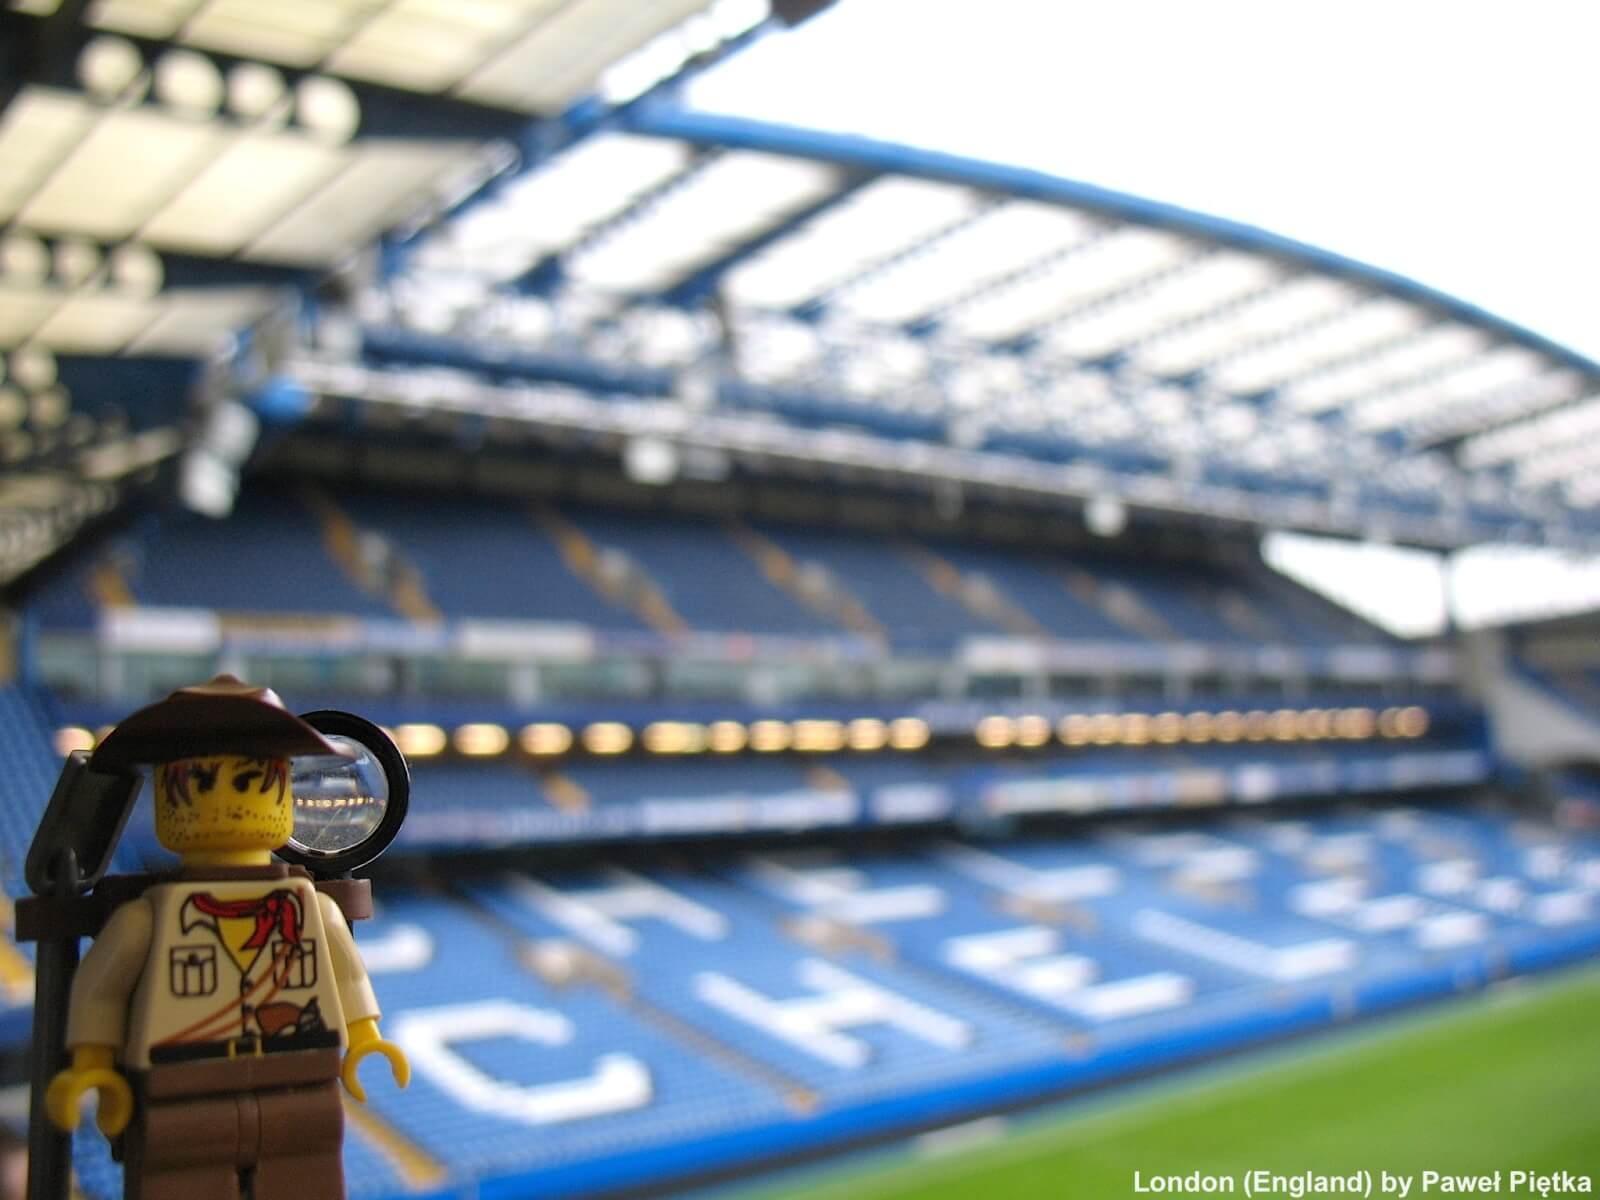 London (England) - Chelsea Stamford Bridge